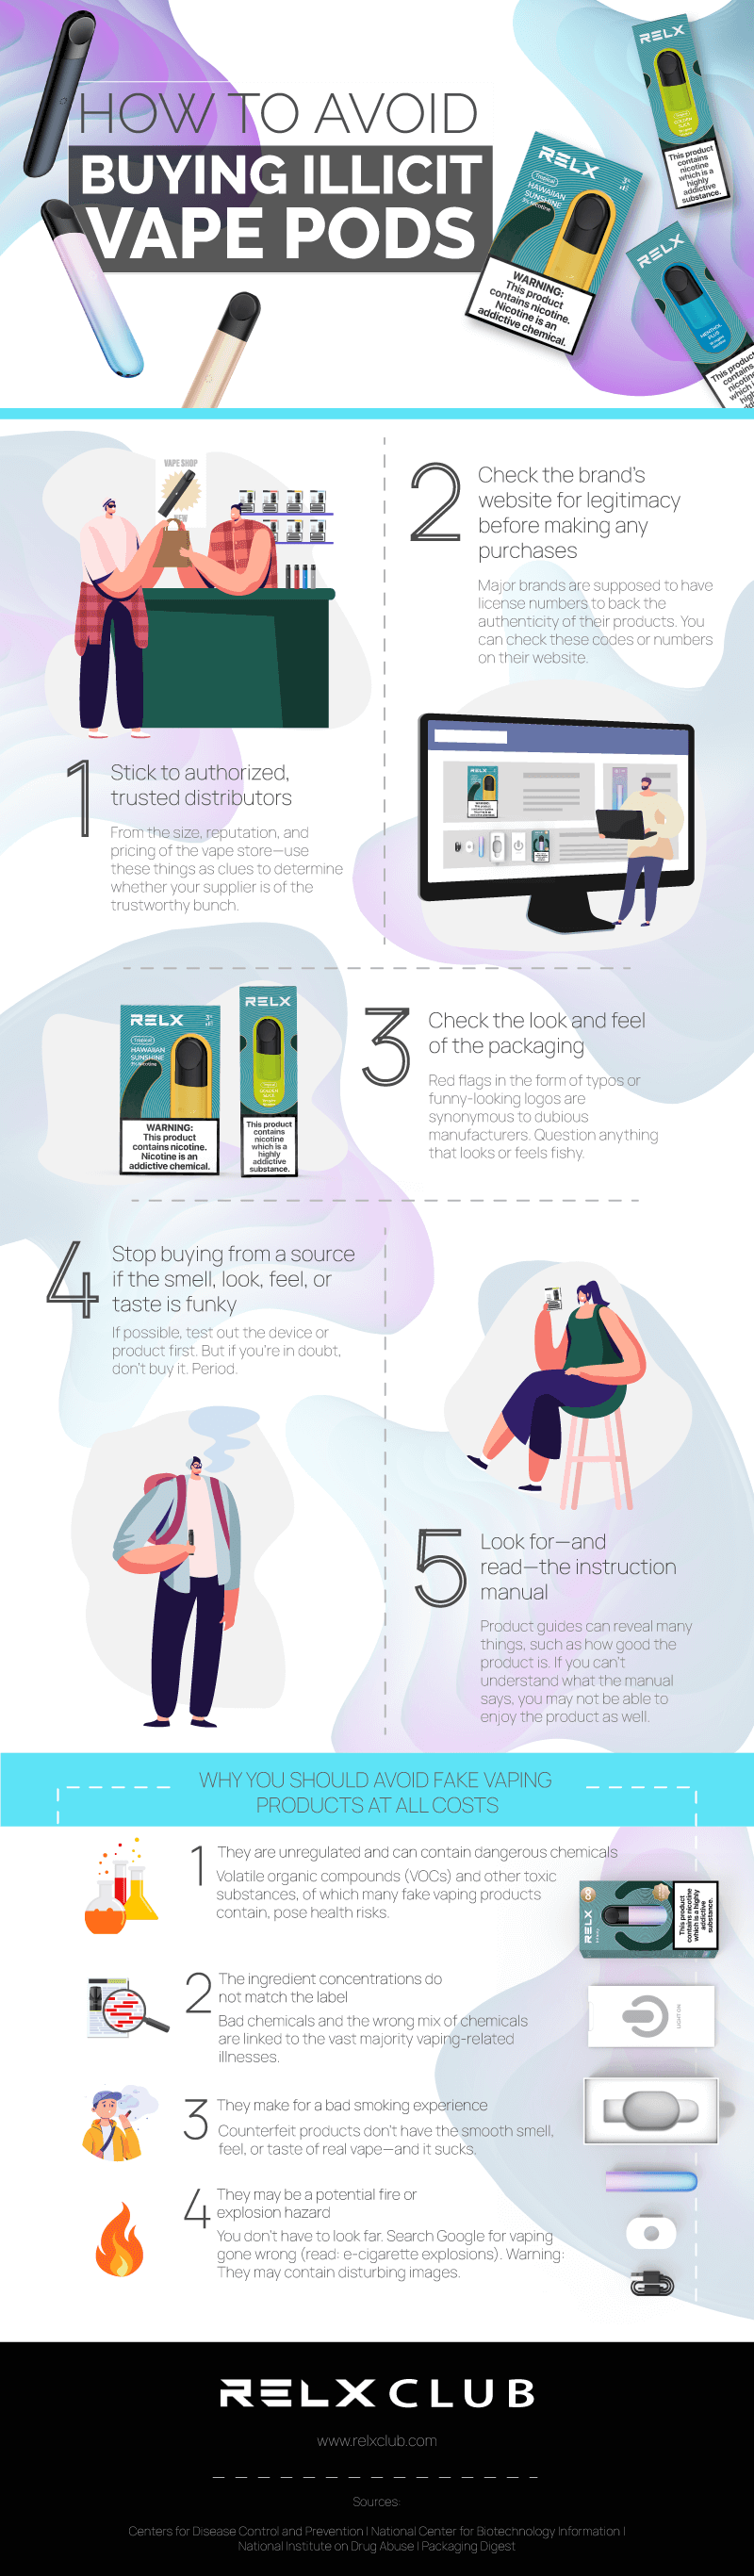 How to Avoid Buying Illicit Vape Pods (Infographic)